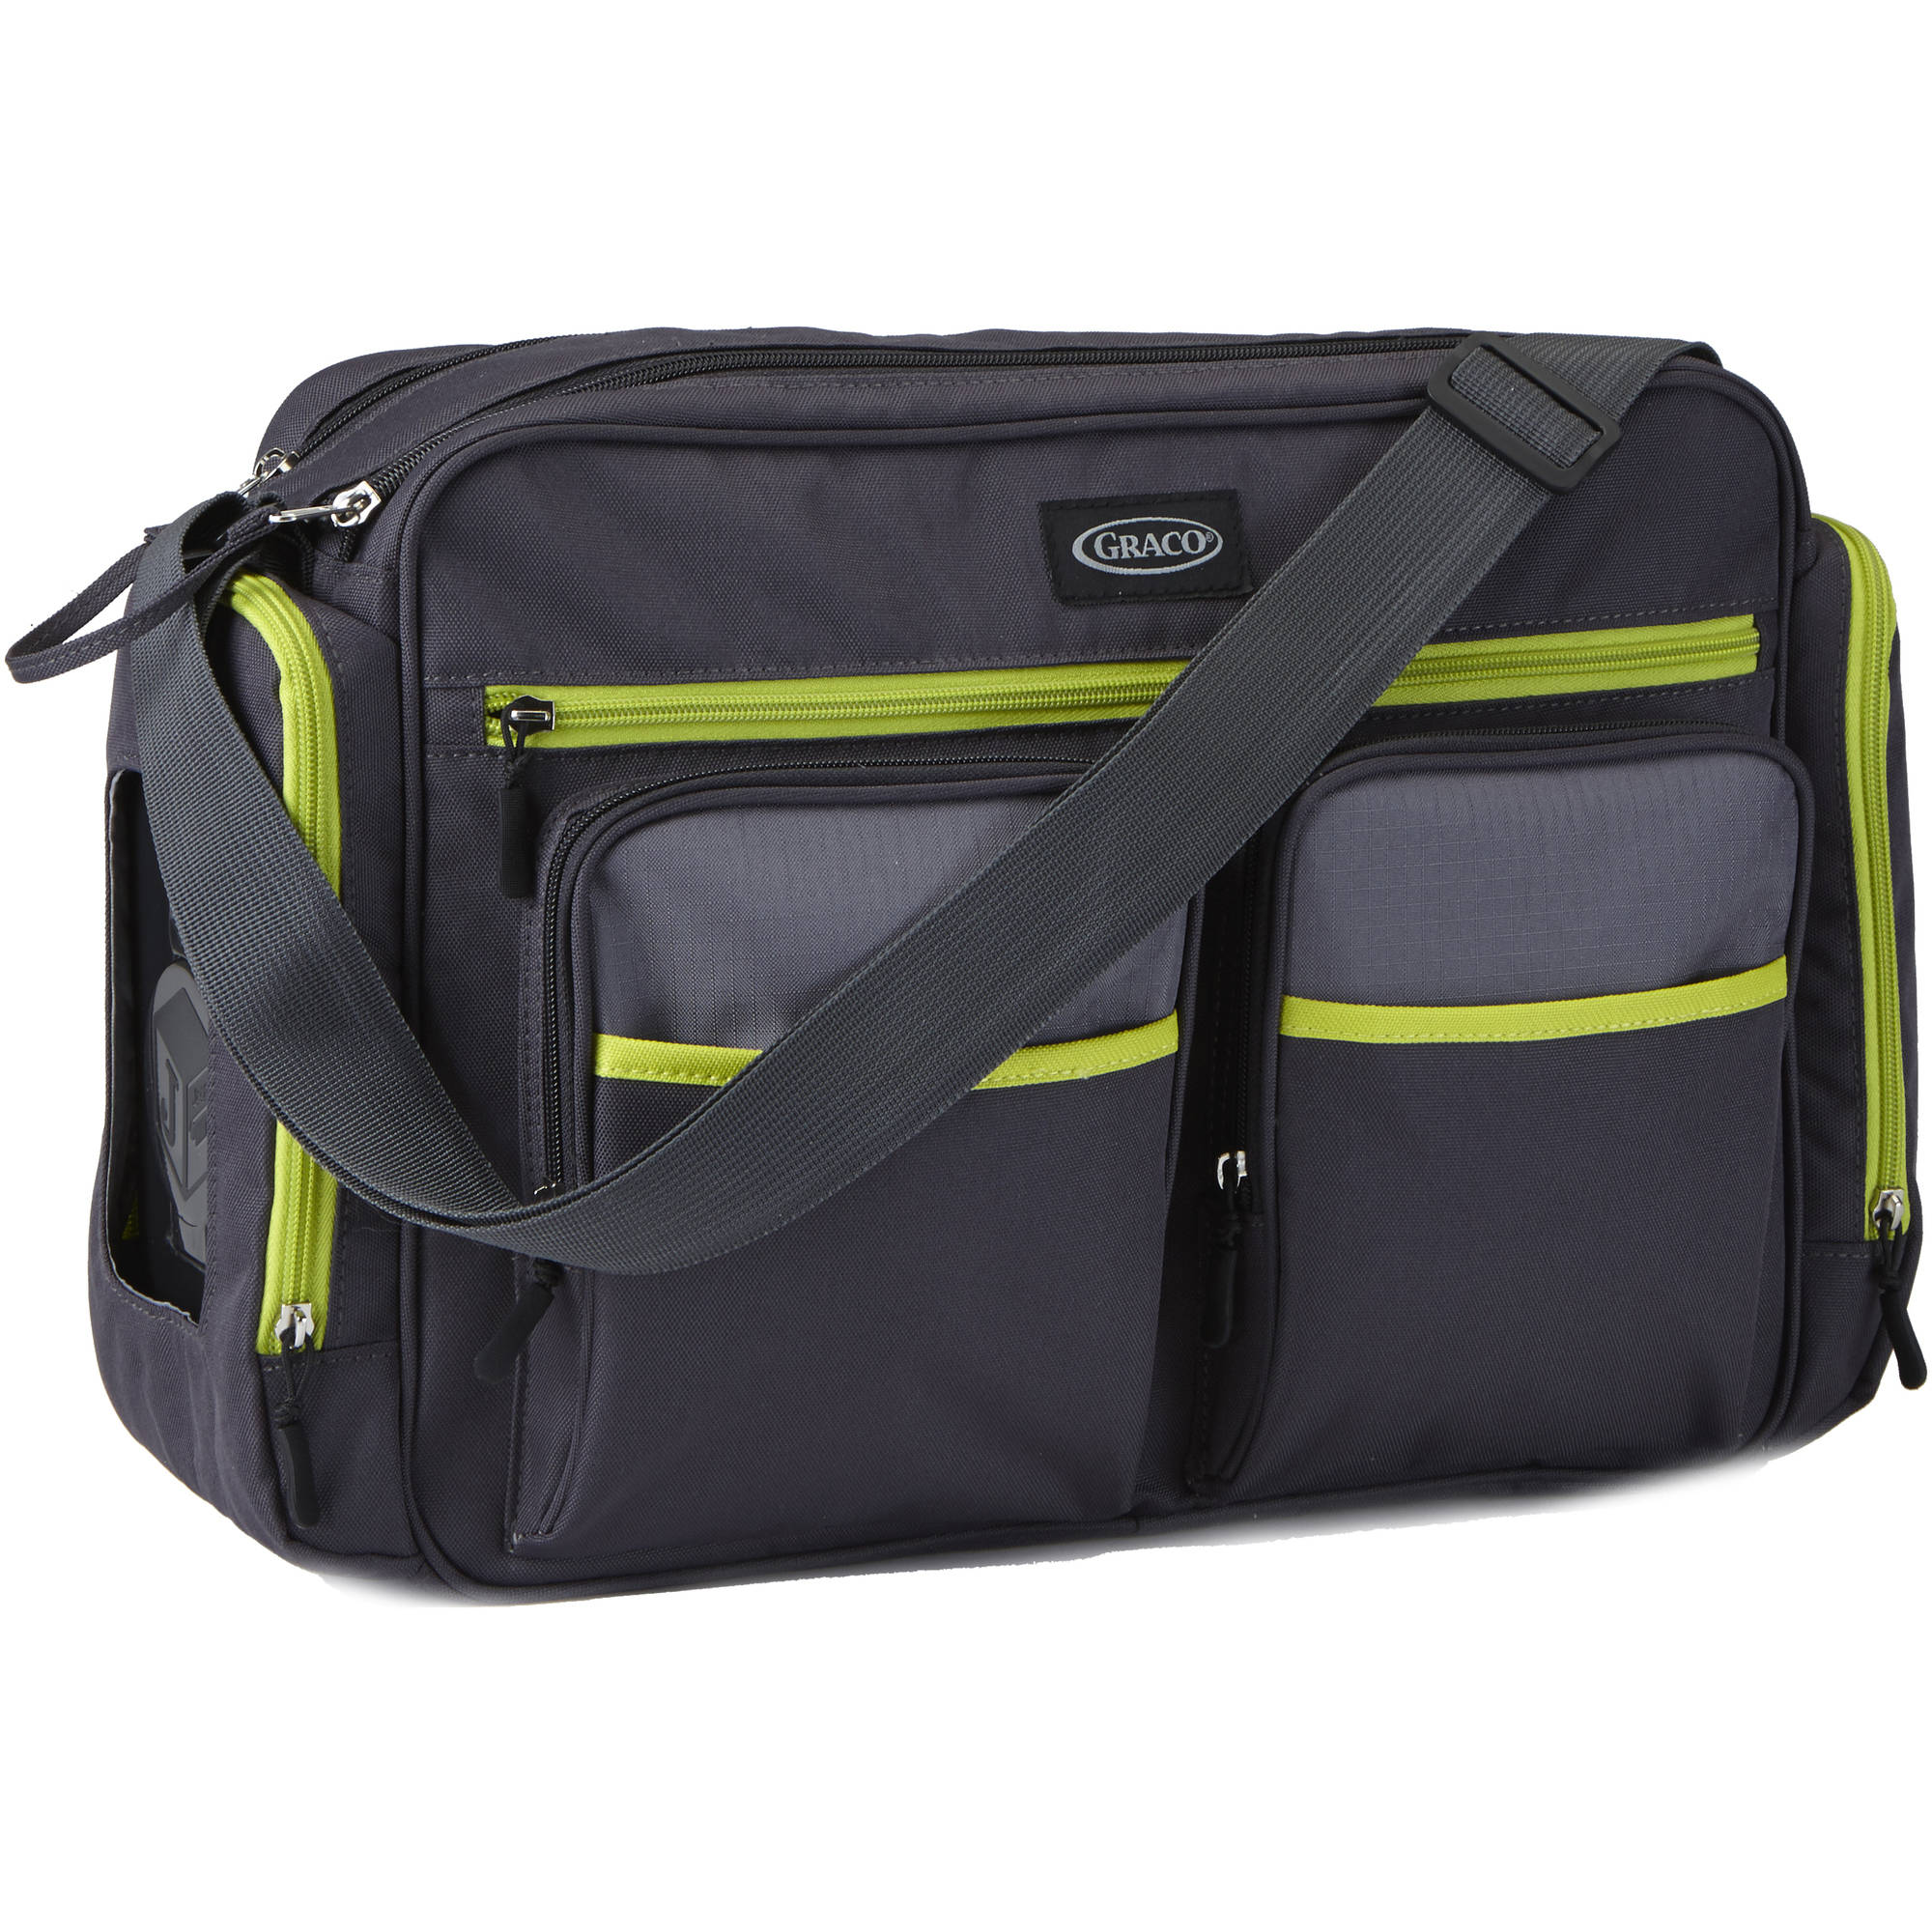 Graco Places and Spaces Duffle Diaper Bag, Grey/Green